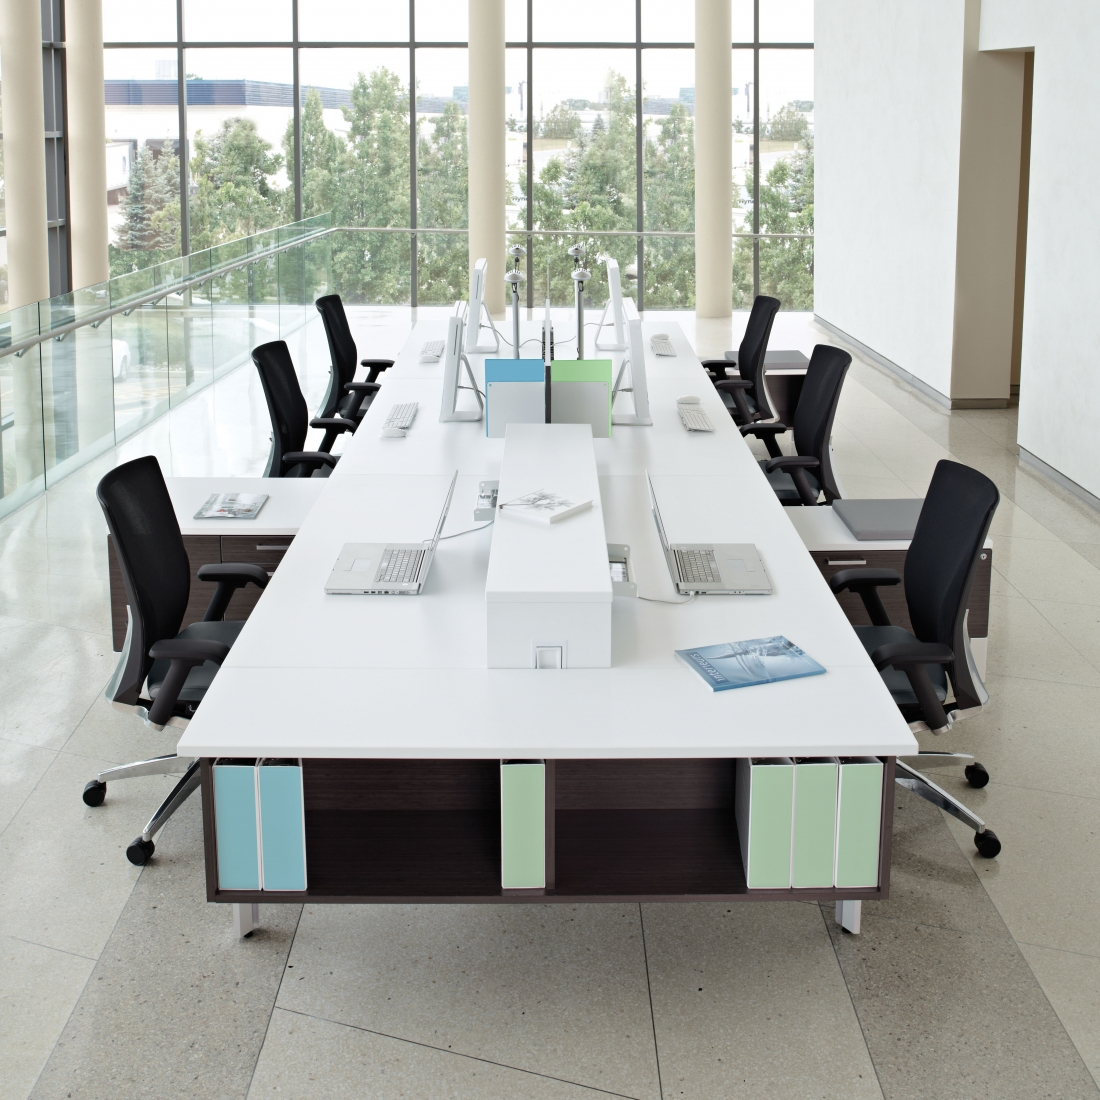 The office furniture blog at desks in Open office furniture